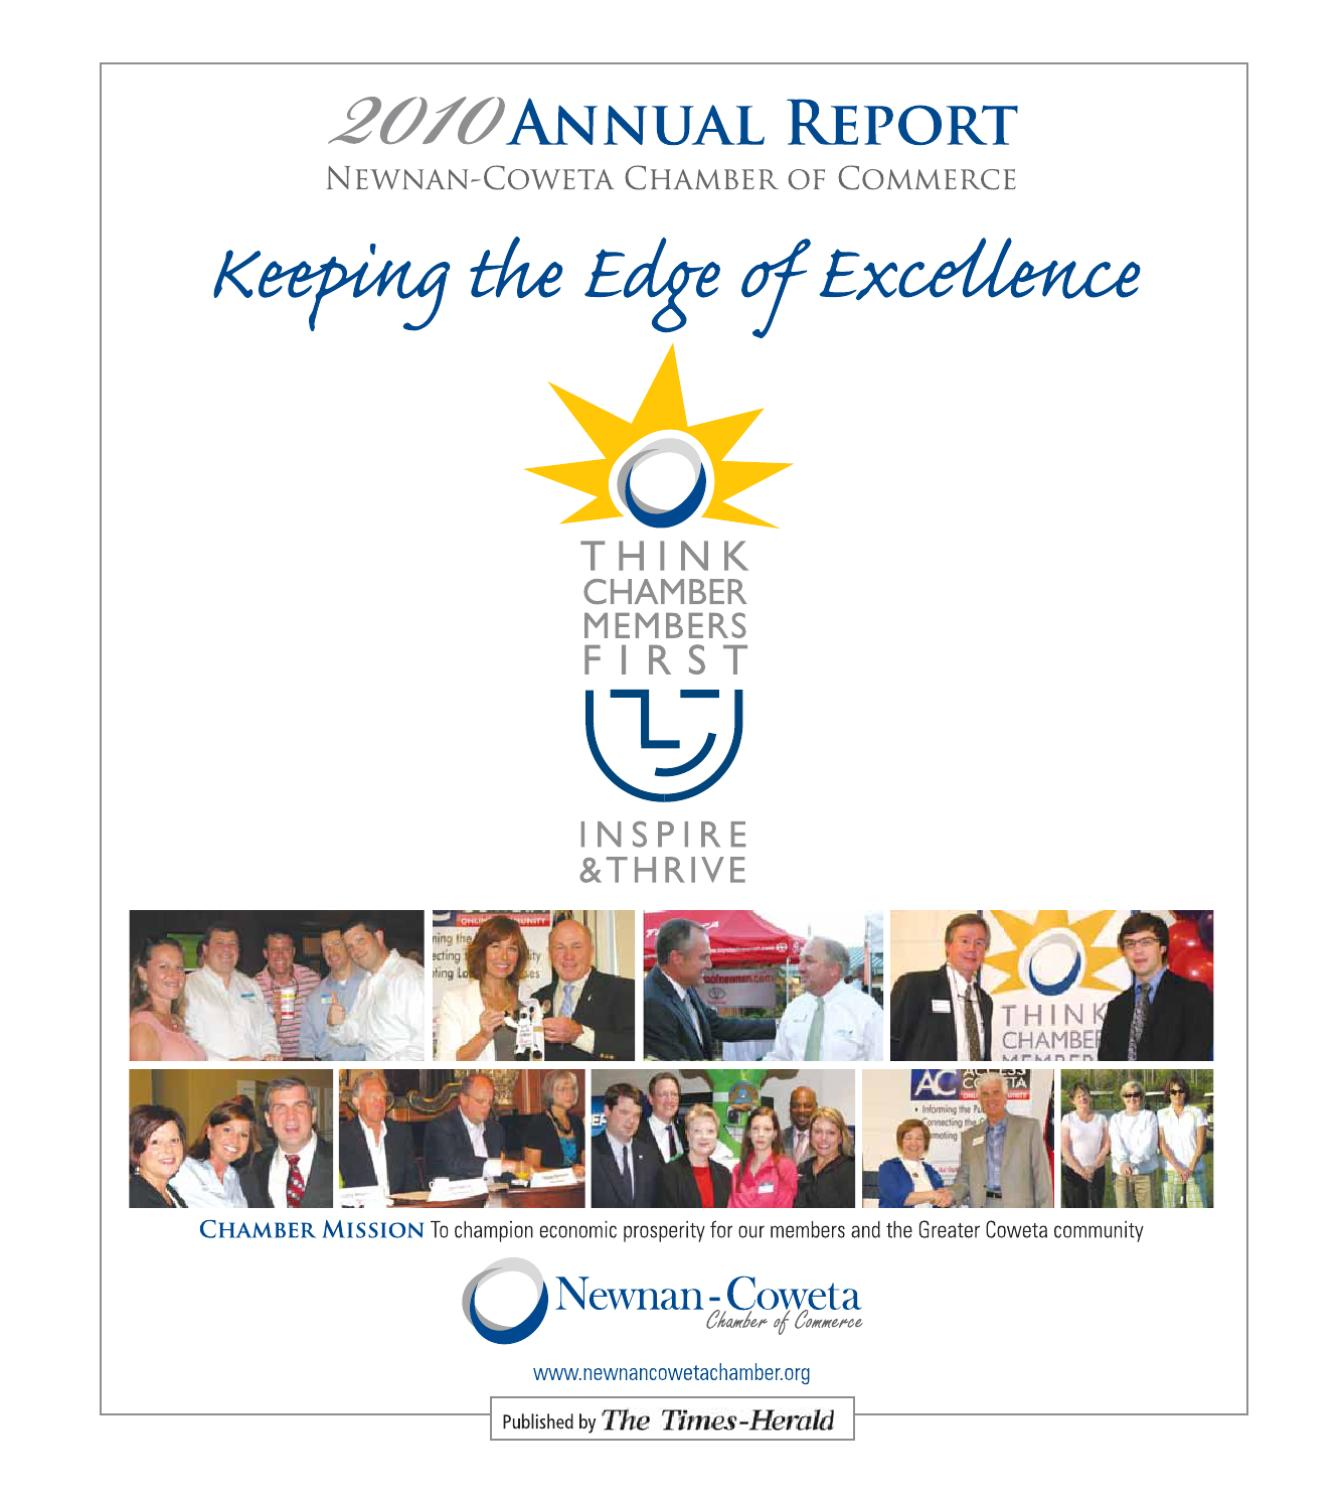 Annual chamber report 2010 by the times herald issuu kristyandbryce Image collections